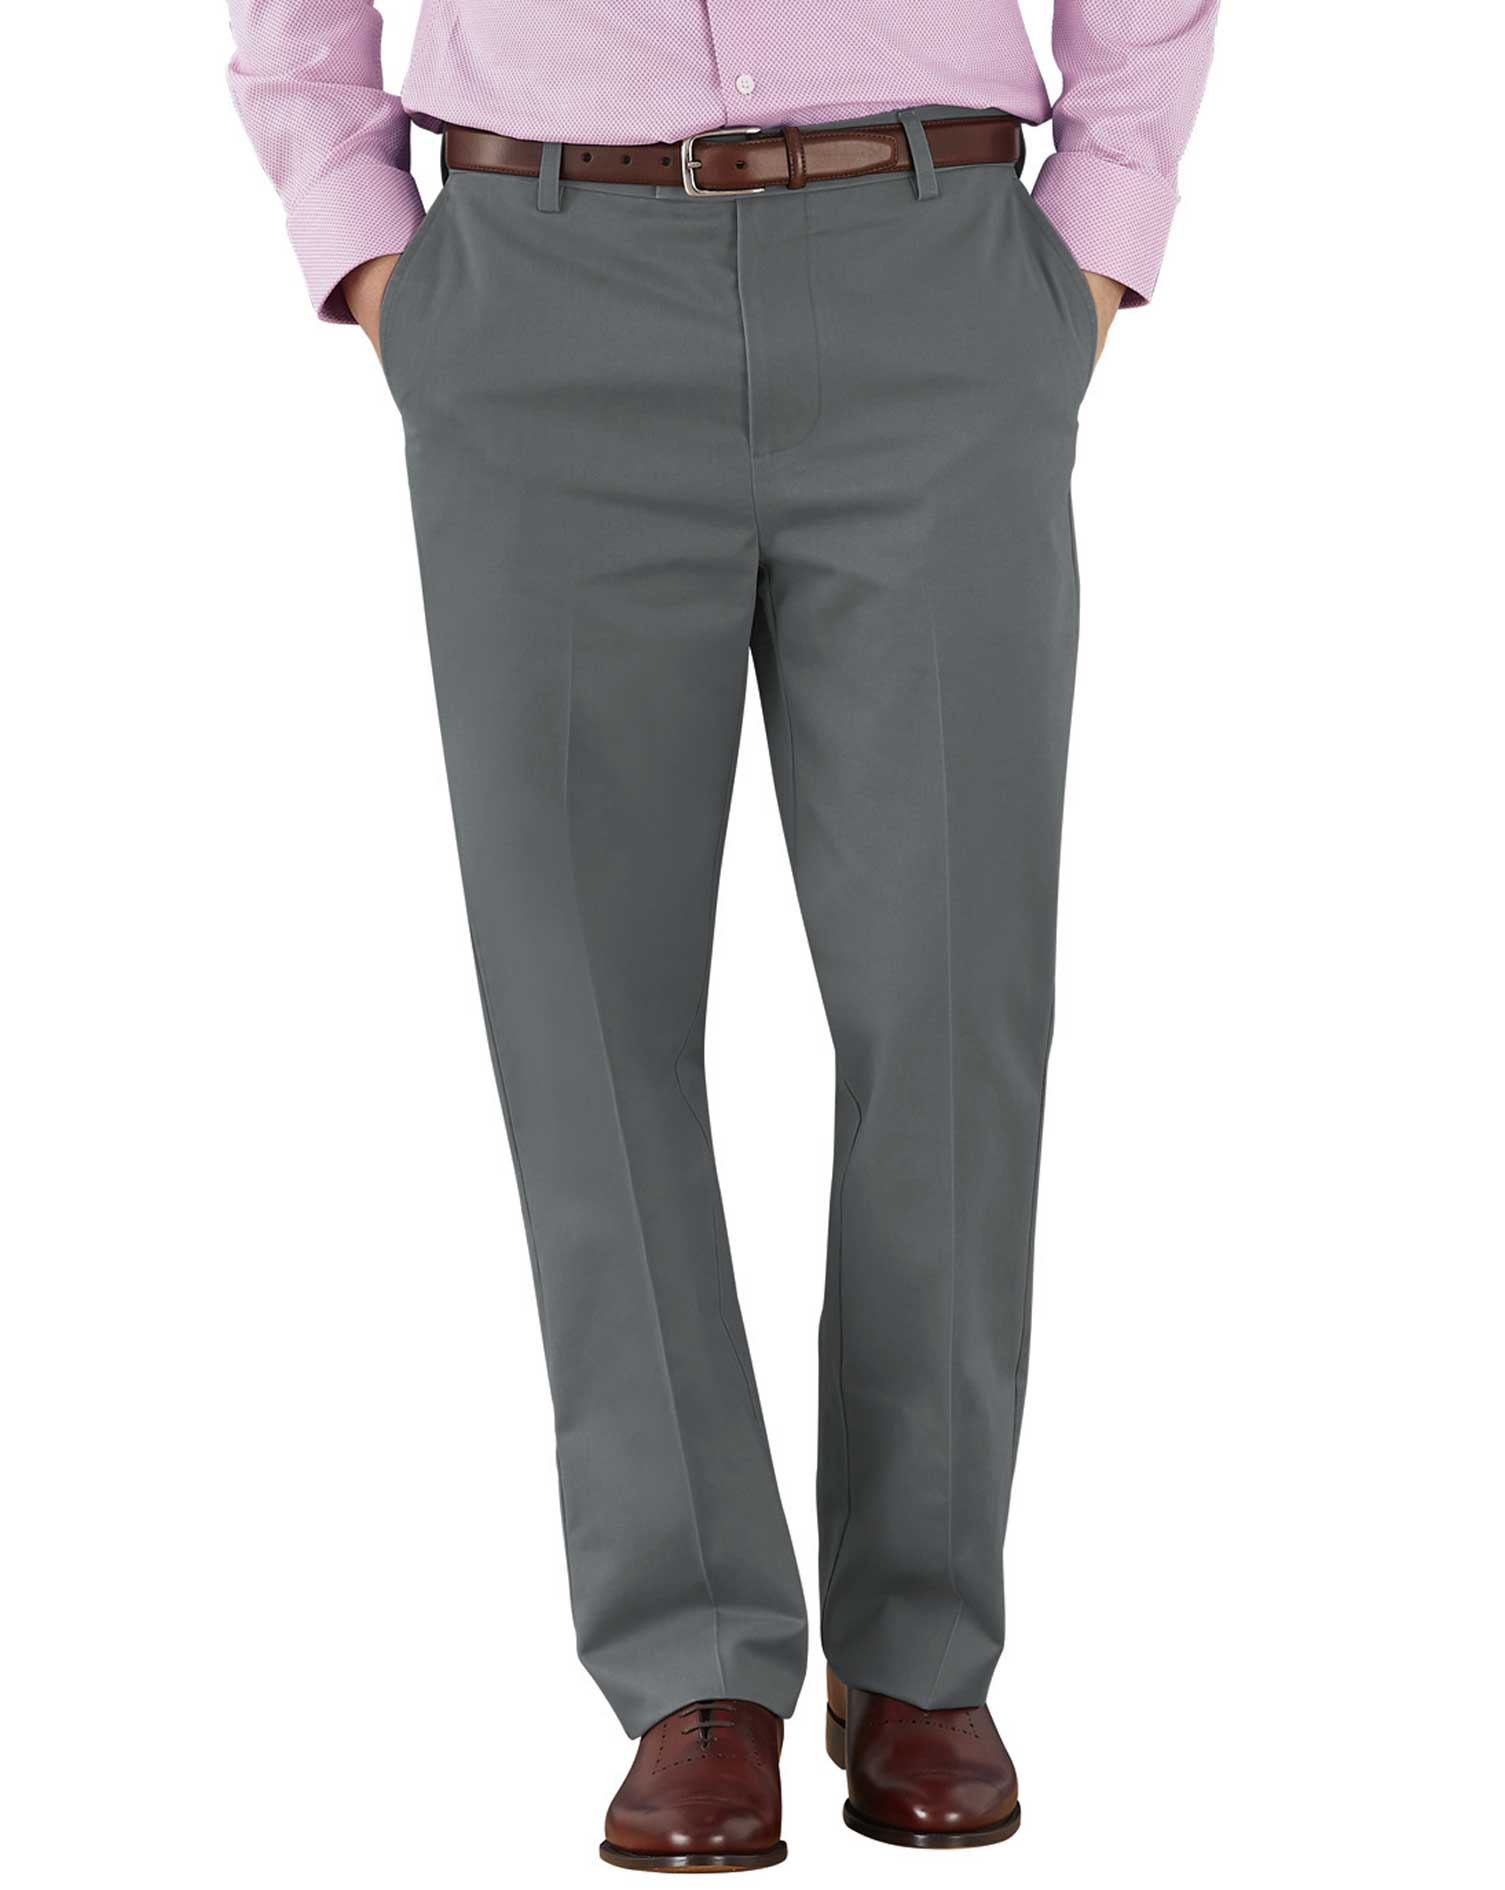 Grey Classic Fit Flat Front Non-Iron Cotton Chino Trousers Size W40 L38 by Charles Tyrwhitt